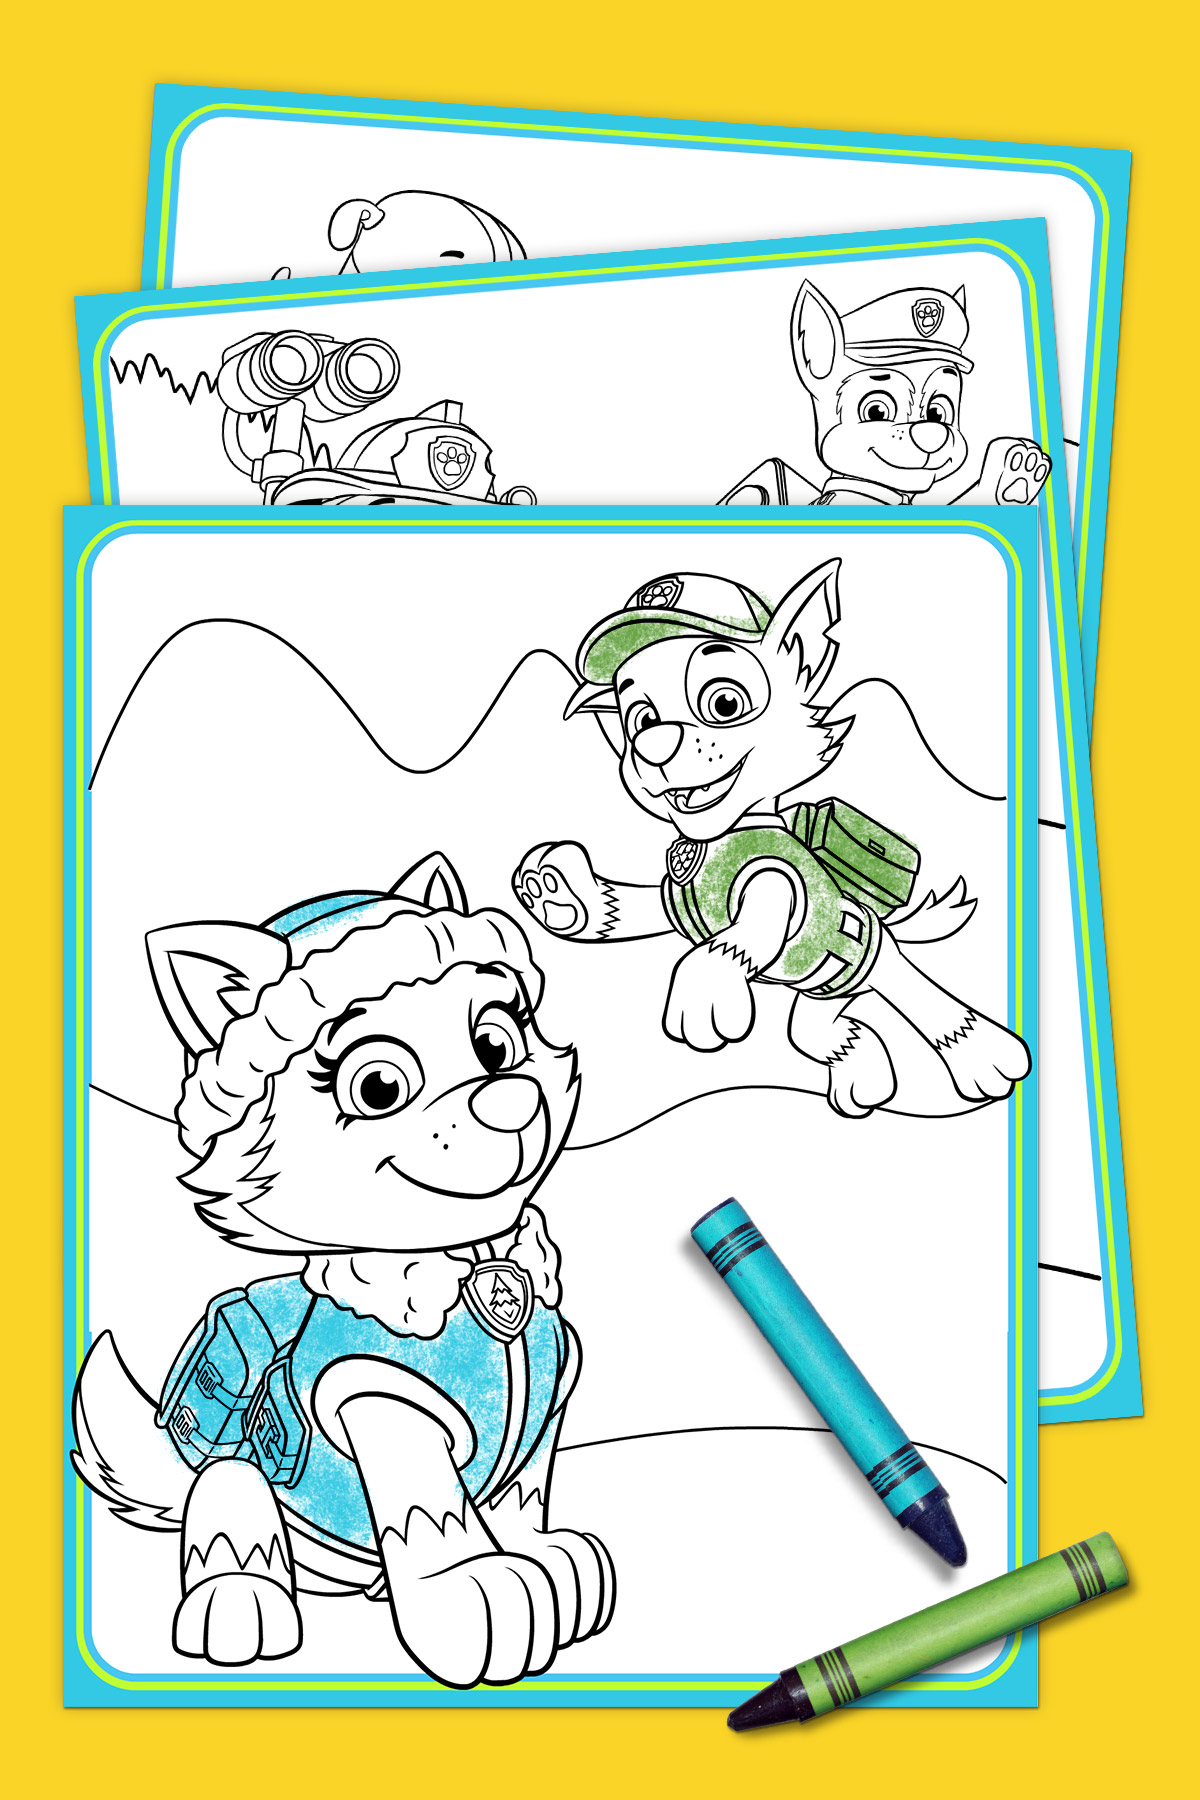 photograph relating to Printable Paw Patrol Coloring Pages titled PAW Patrol - Everest Coloring Pack Nickelodeon Mom and dad